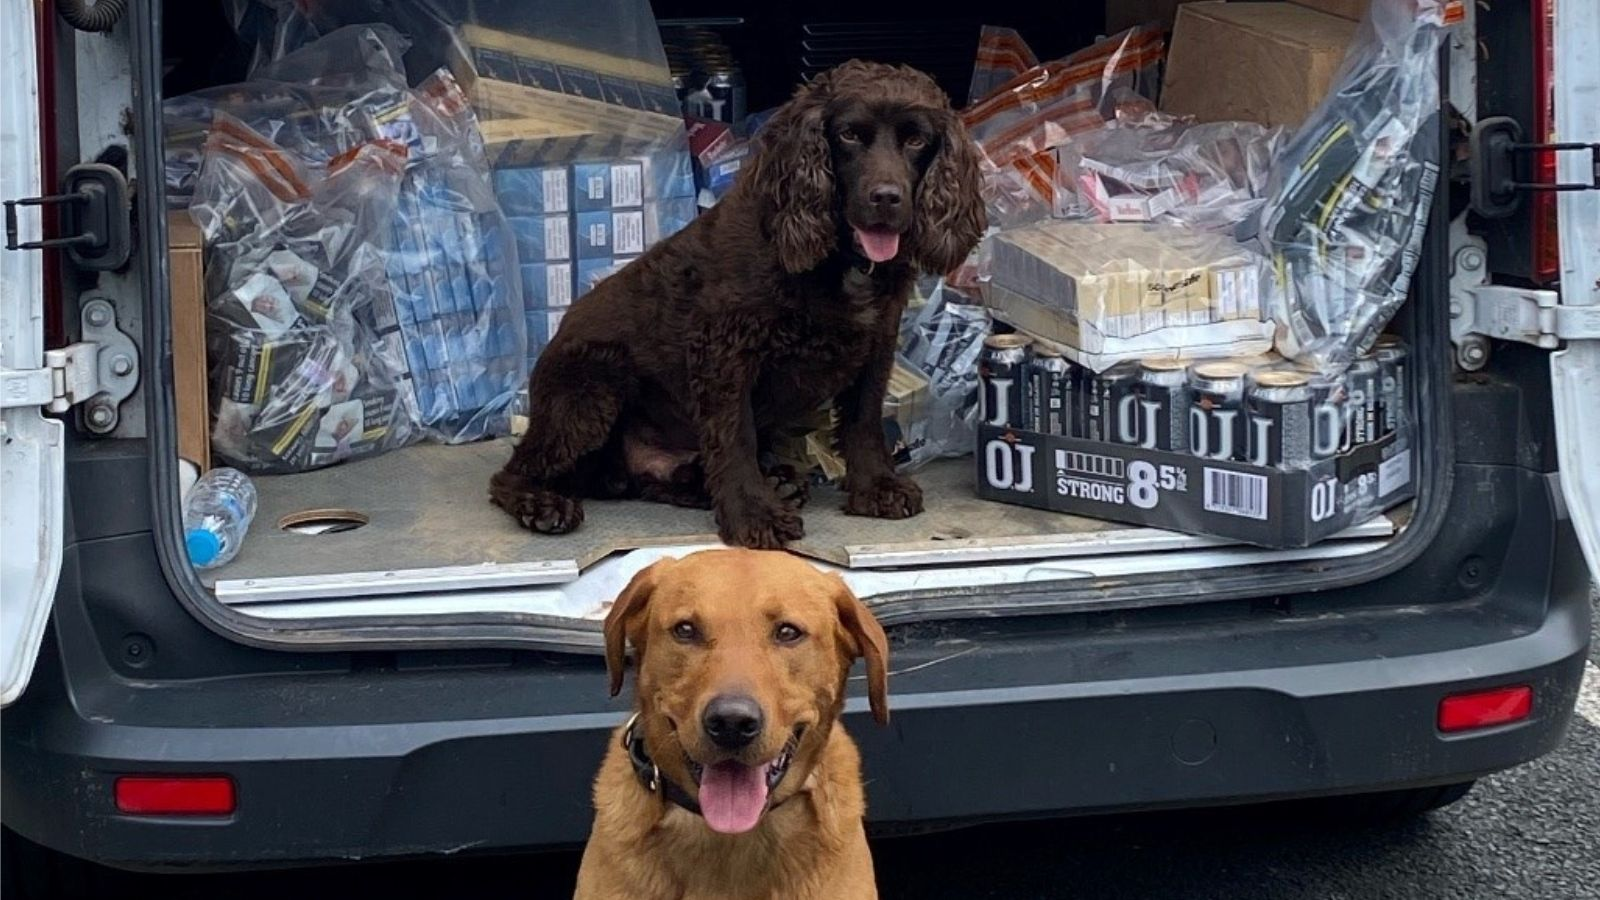 Joint operation yields thousands of pounds of contraband